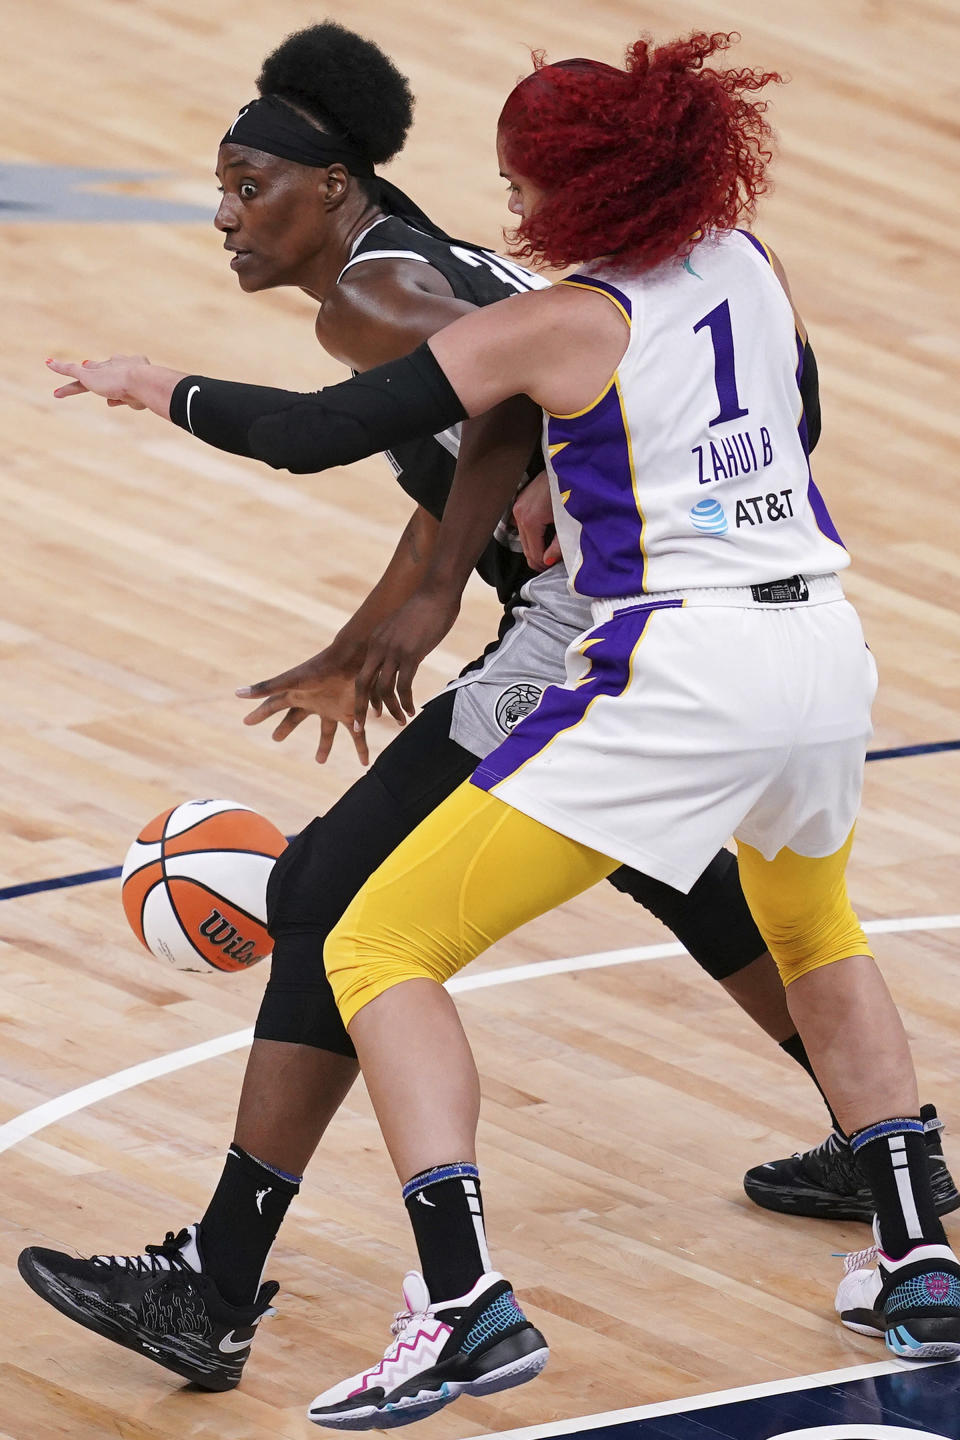 Minnesota Lynx center Sylvia Fowles (34) looks for an open teammate to pass to as Los Angeles Sparks center Amanda Zahui B (1) defends during the second quarterof a WNBA basketball game Saturday, June 12, 2021, in Minneapolis. (Anthony Souffle/Star Tribune via AP)